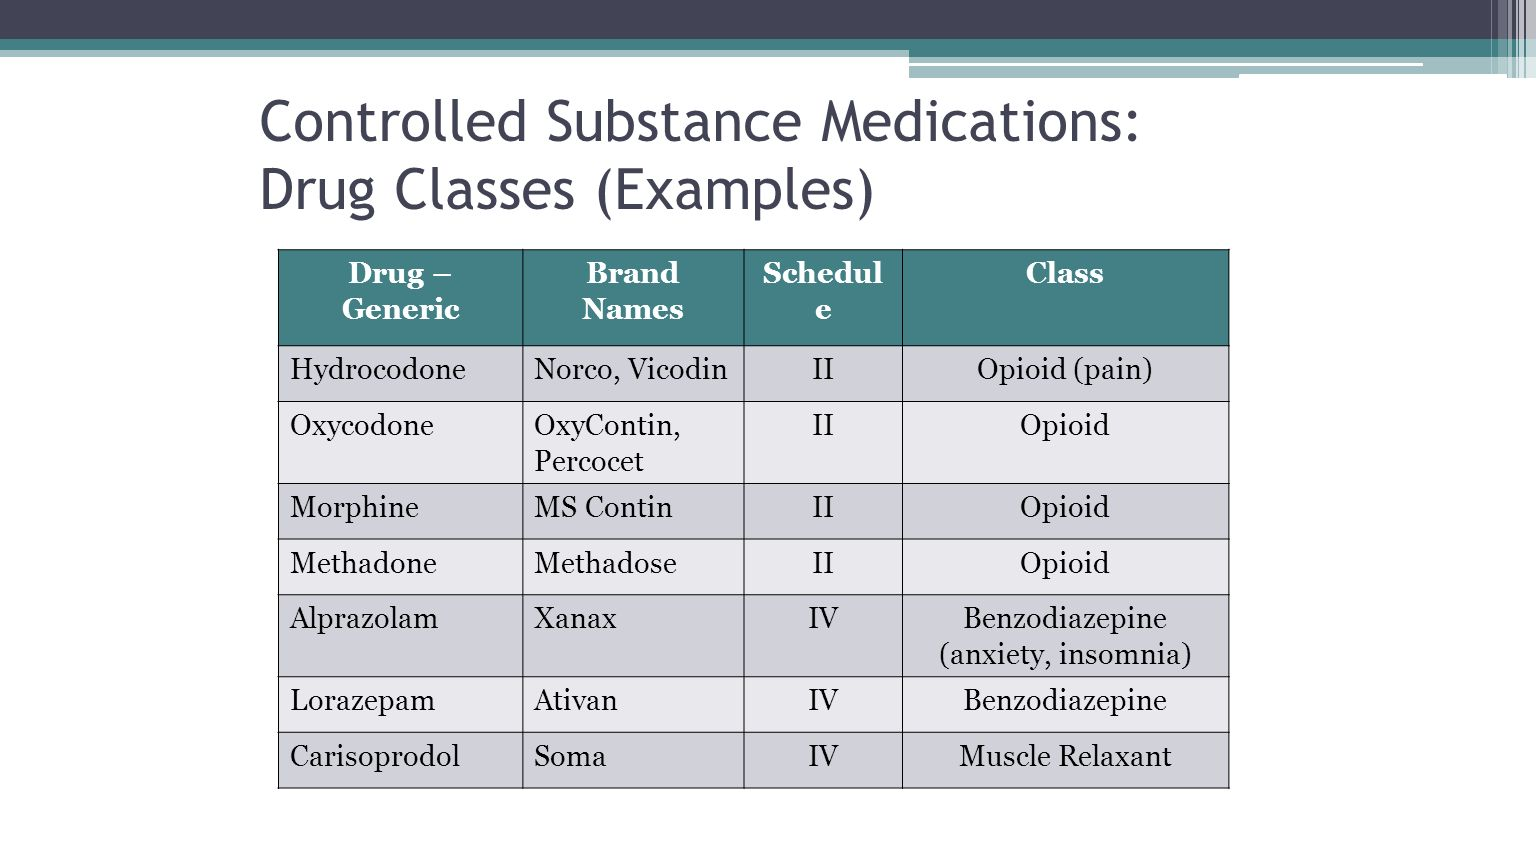 alprazolam schedule 4 controlled substance